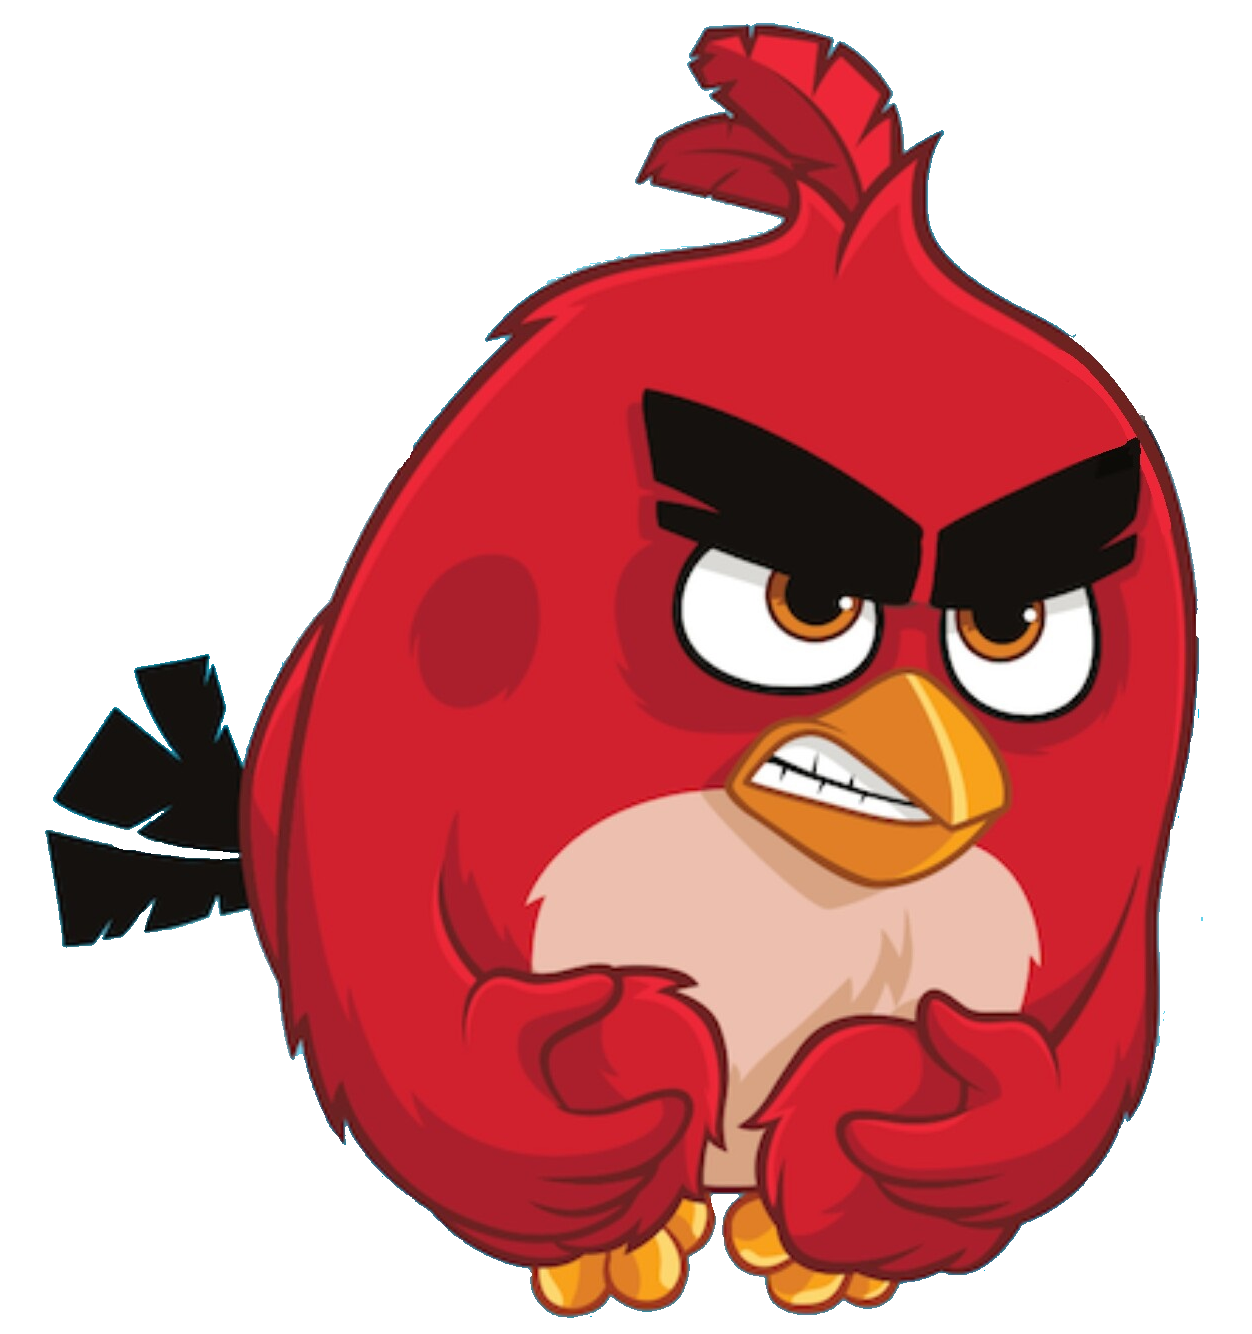 image abmovie redflying angry birds wiki fandom powered by wikia. Black Bedroom Furniture Sets. Home Design Ideas